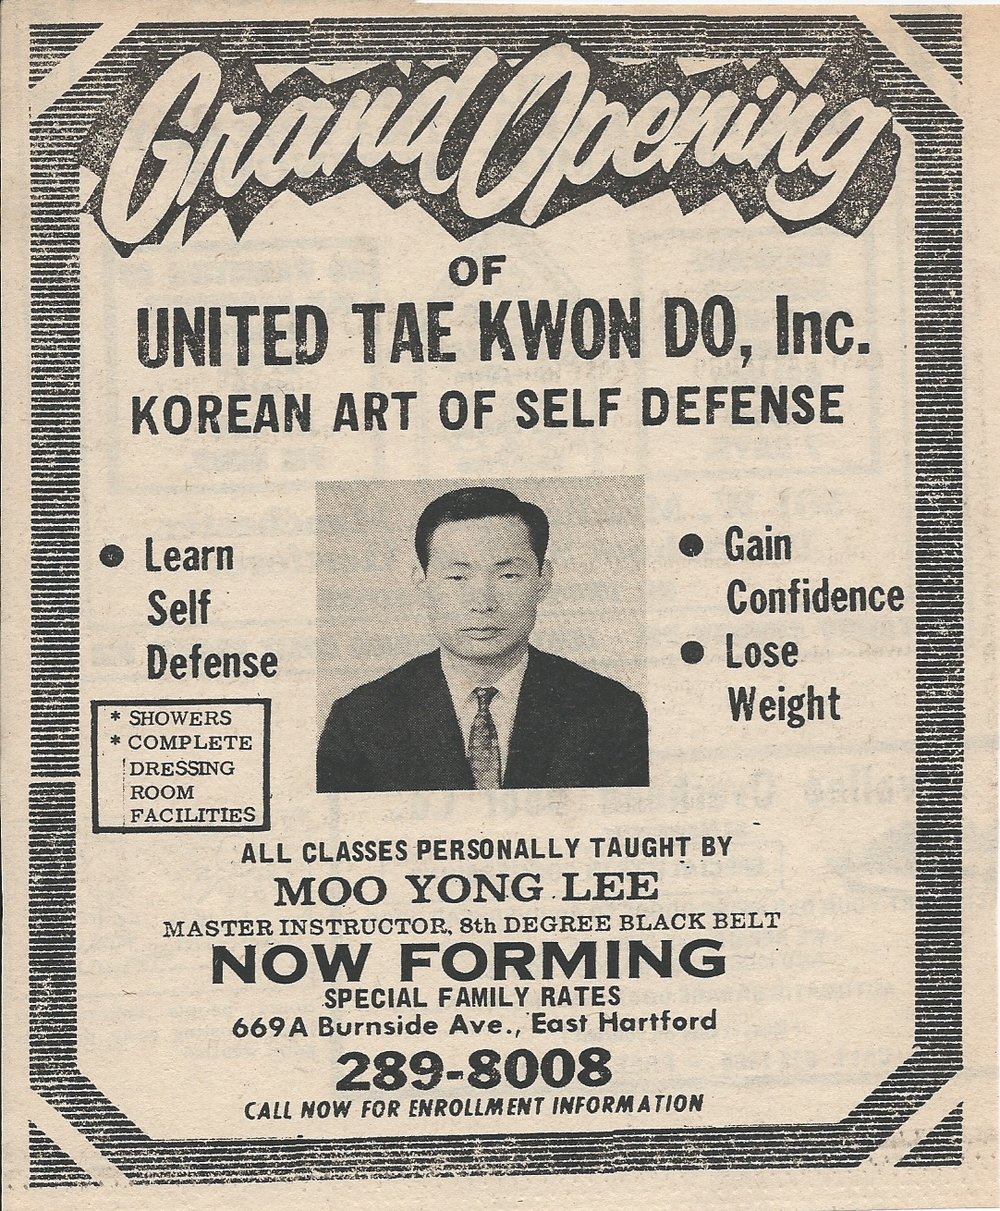 a0001 Opening Ad 1974.jpg